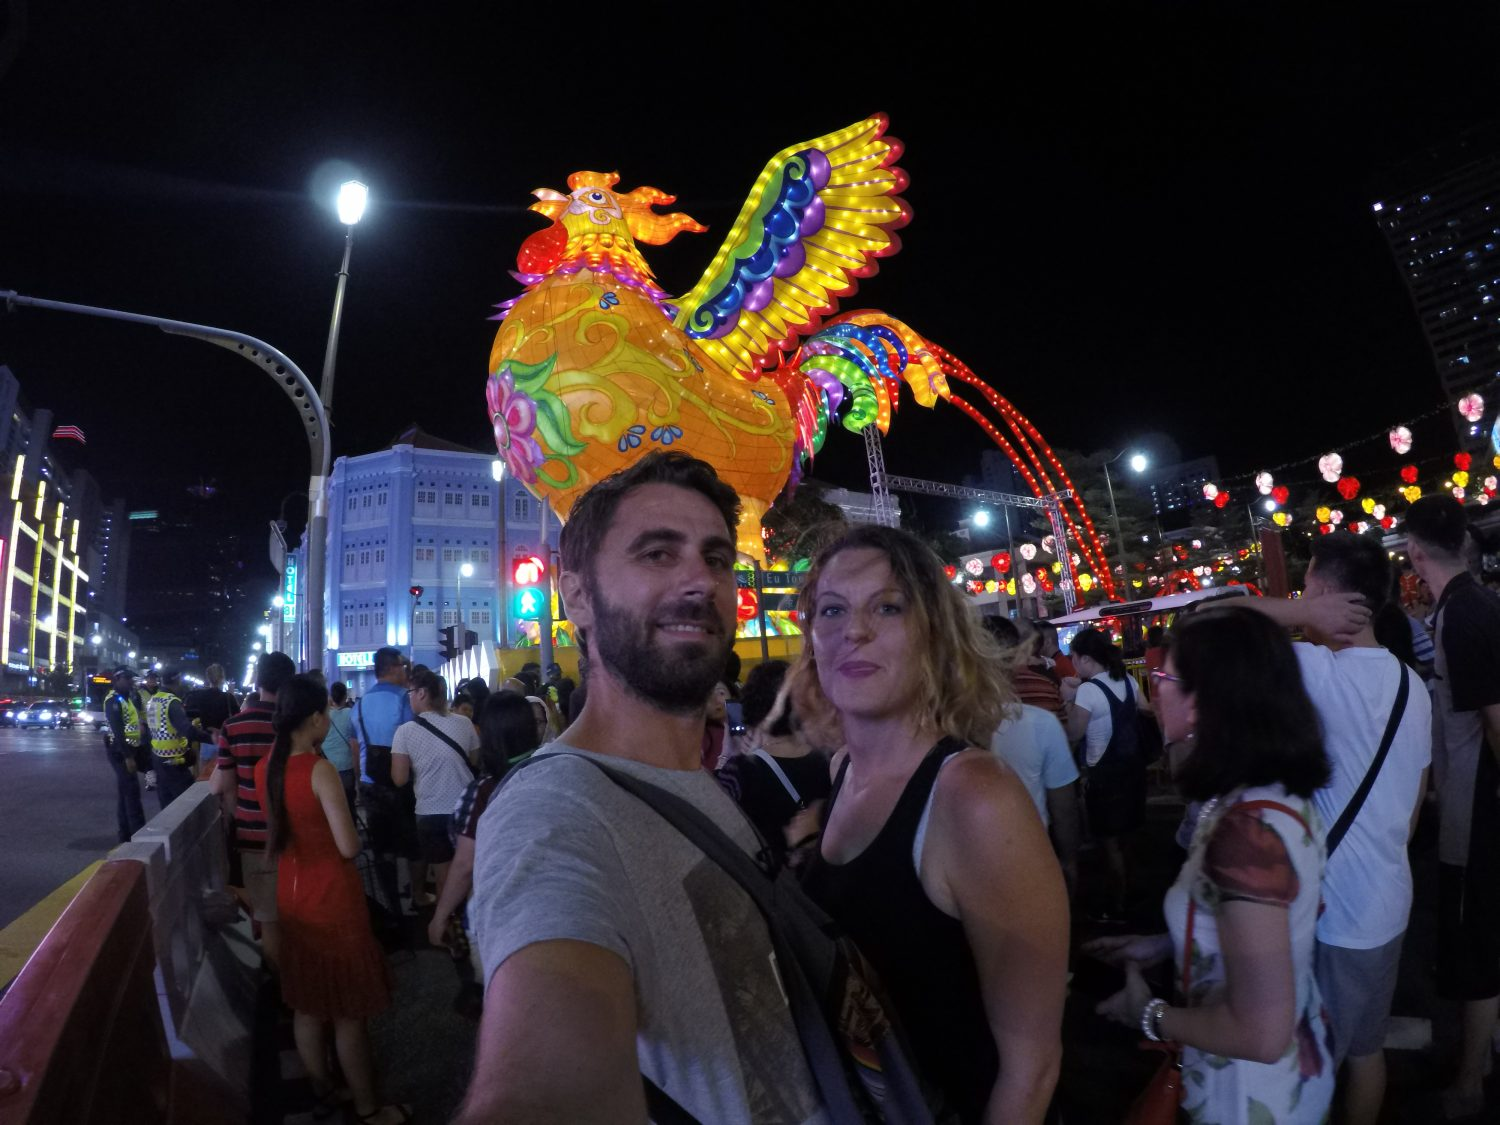 Selfie Singapour Nouvel an chinois